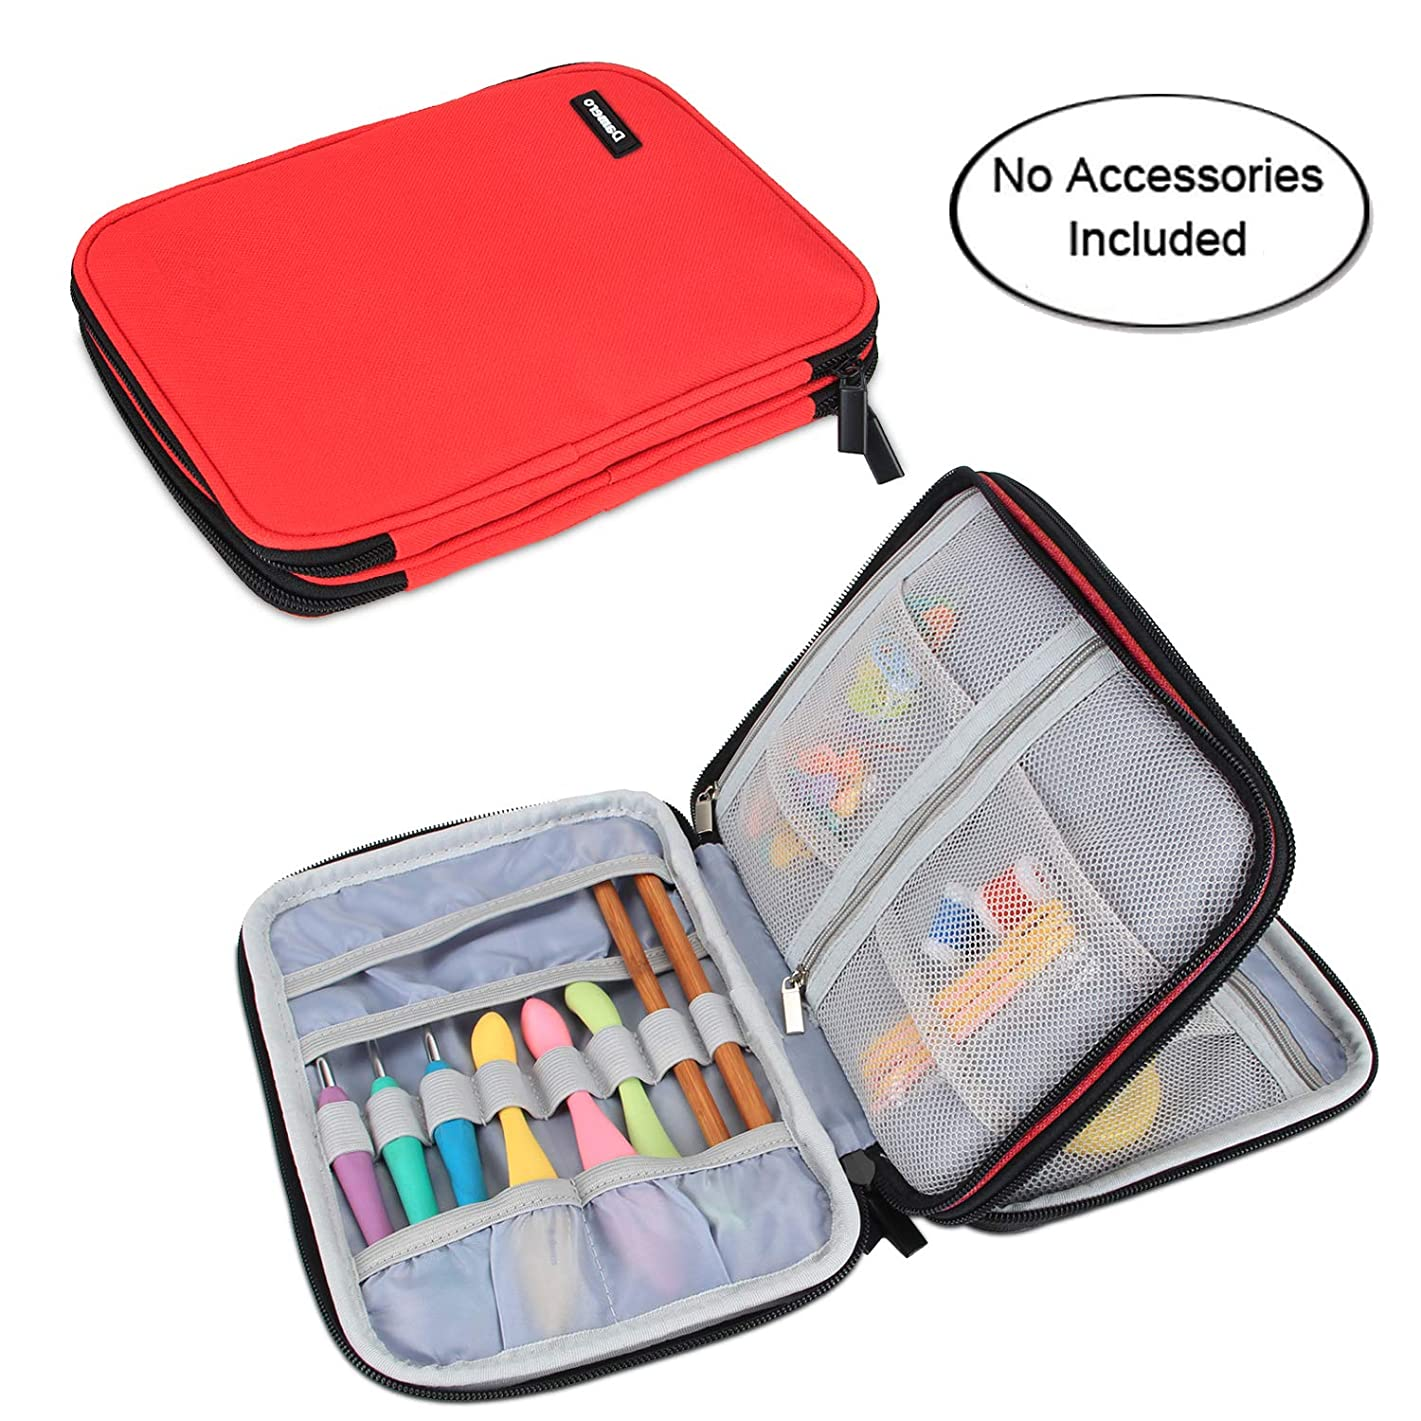 Damero Crochet Hook Case, Travel Storage Bag for Swing Crochet Hooks, Lighted Hooks, Needles(Up to 8'') and Accessories, Large, Red (No Accessories Included)